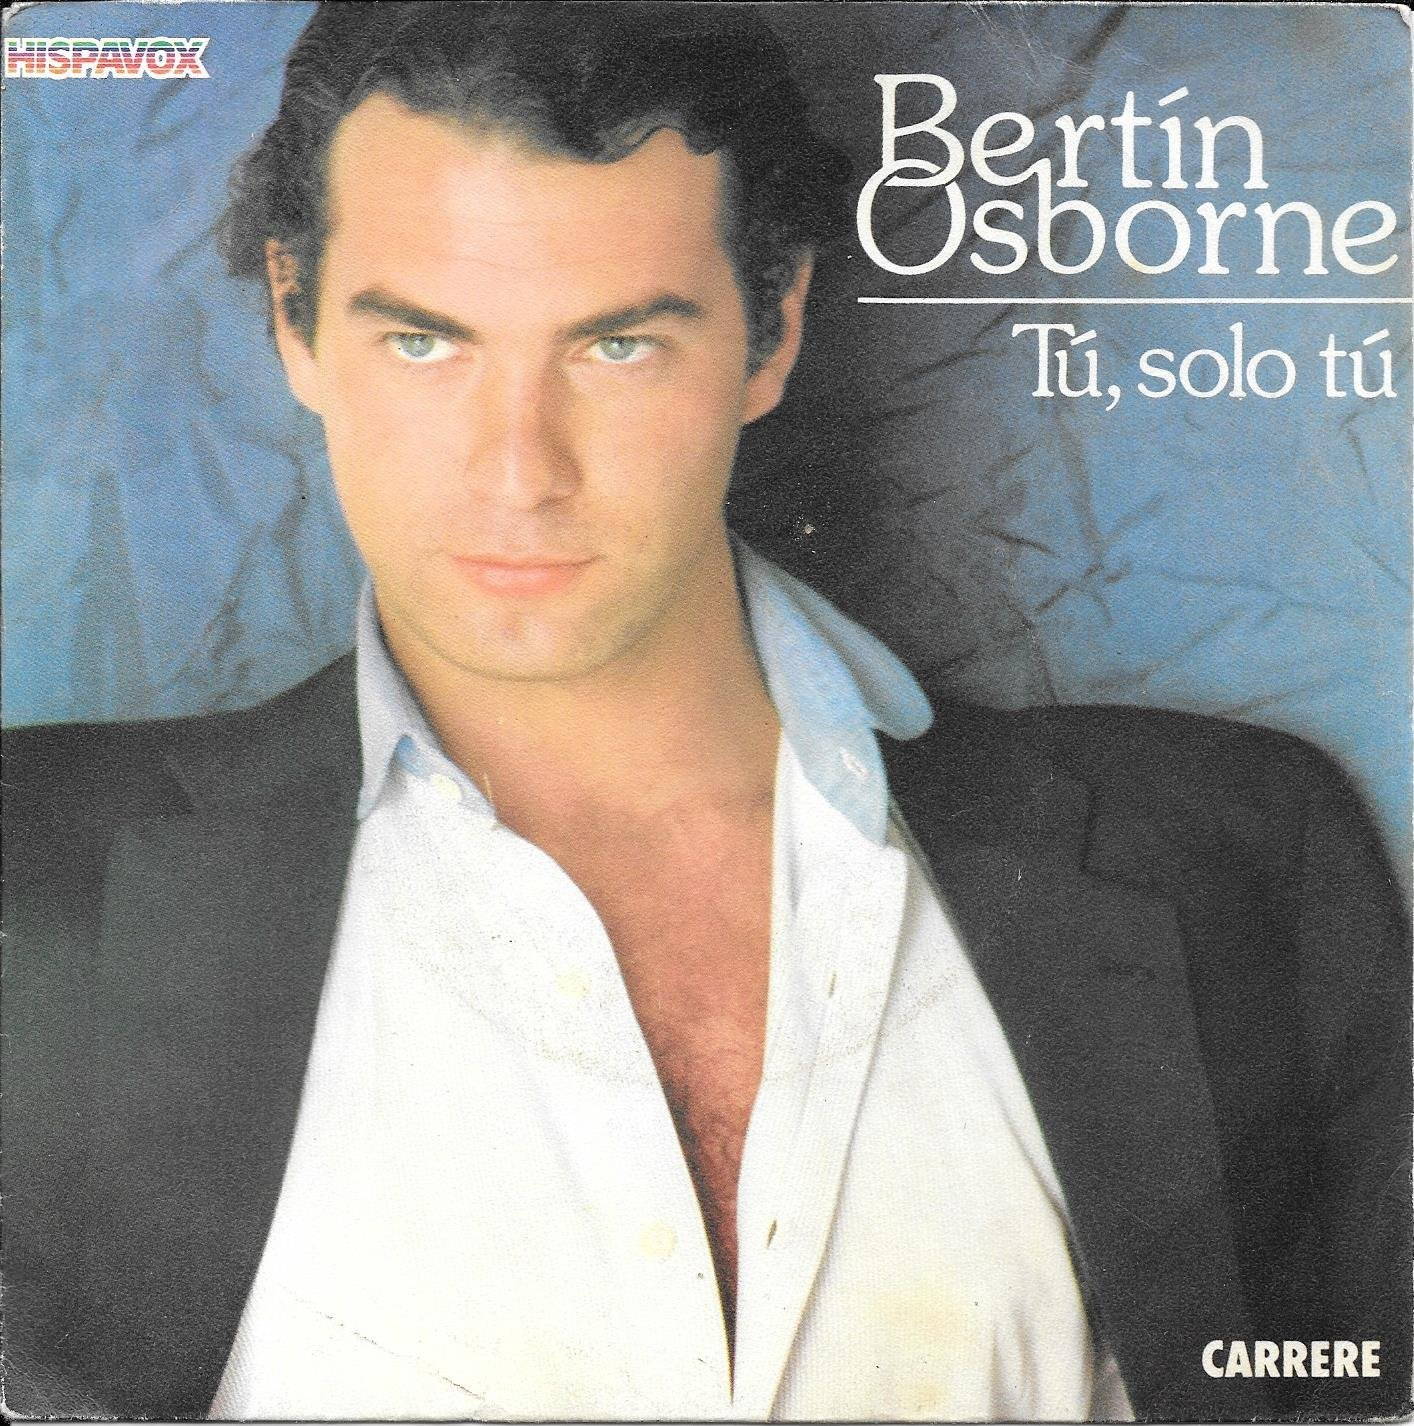 Tu, solo tu / Vinyl single : Bertin Osborne: Amazon.es: Música